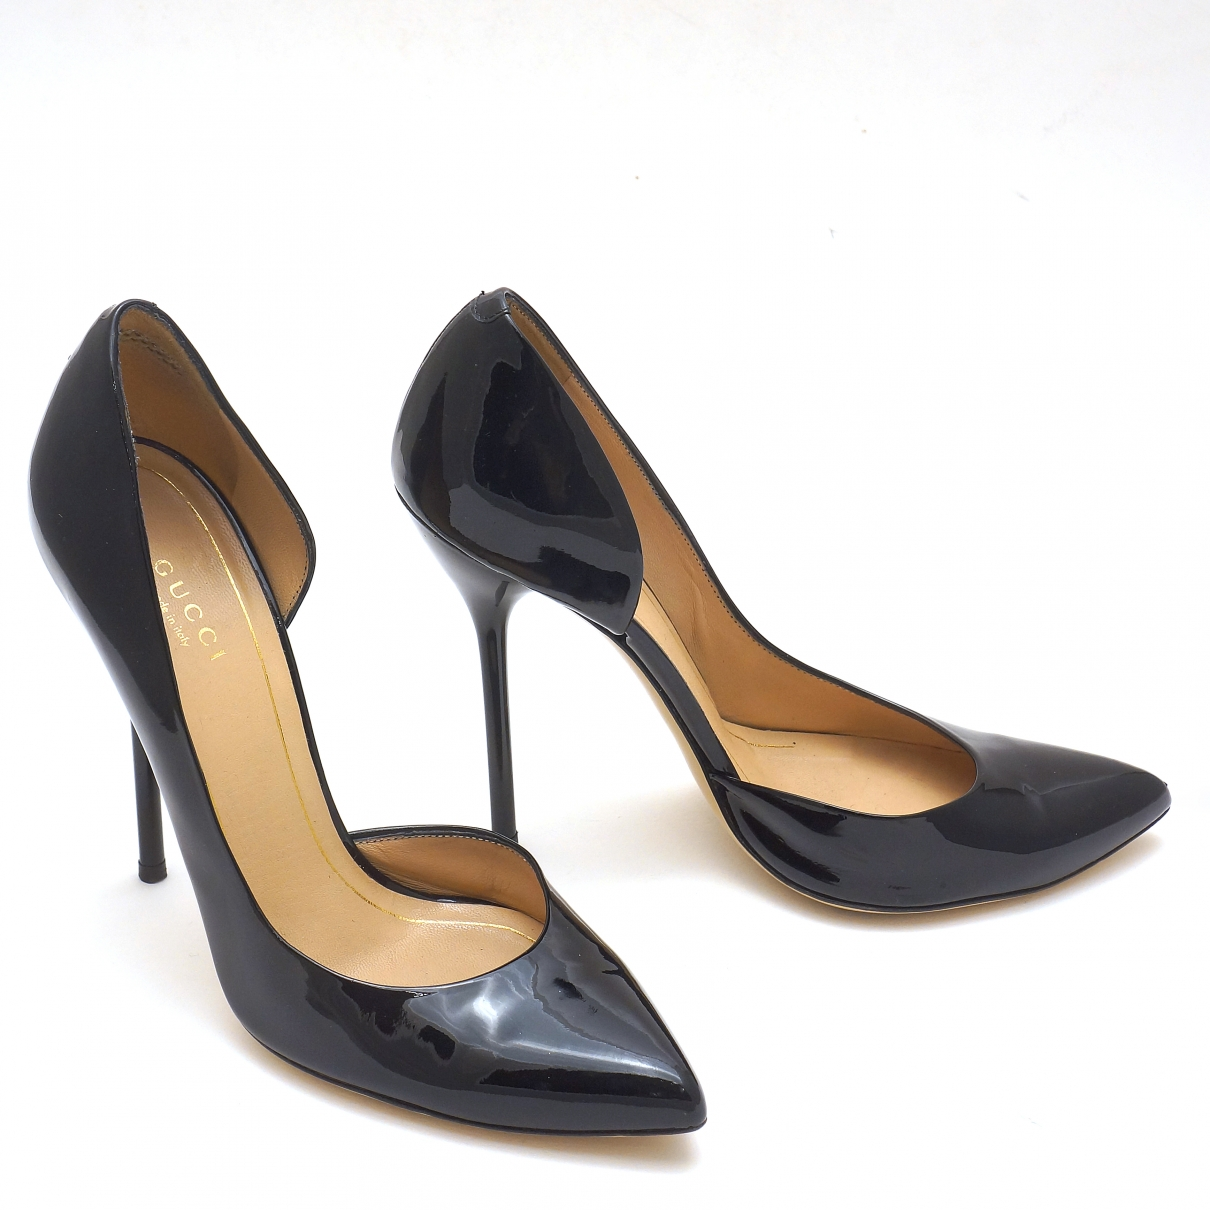 Gucci \N Black Patent leather Heels for Women 39 EU